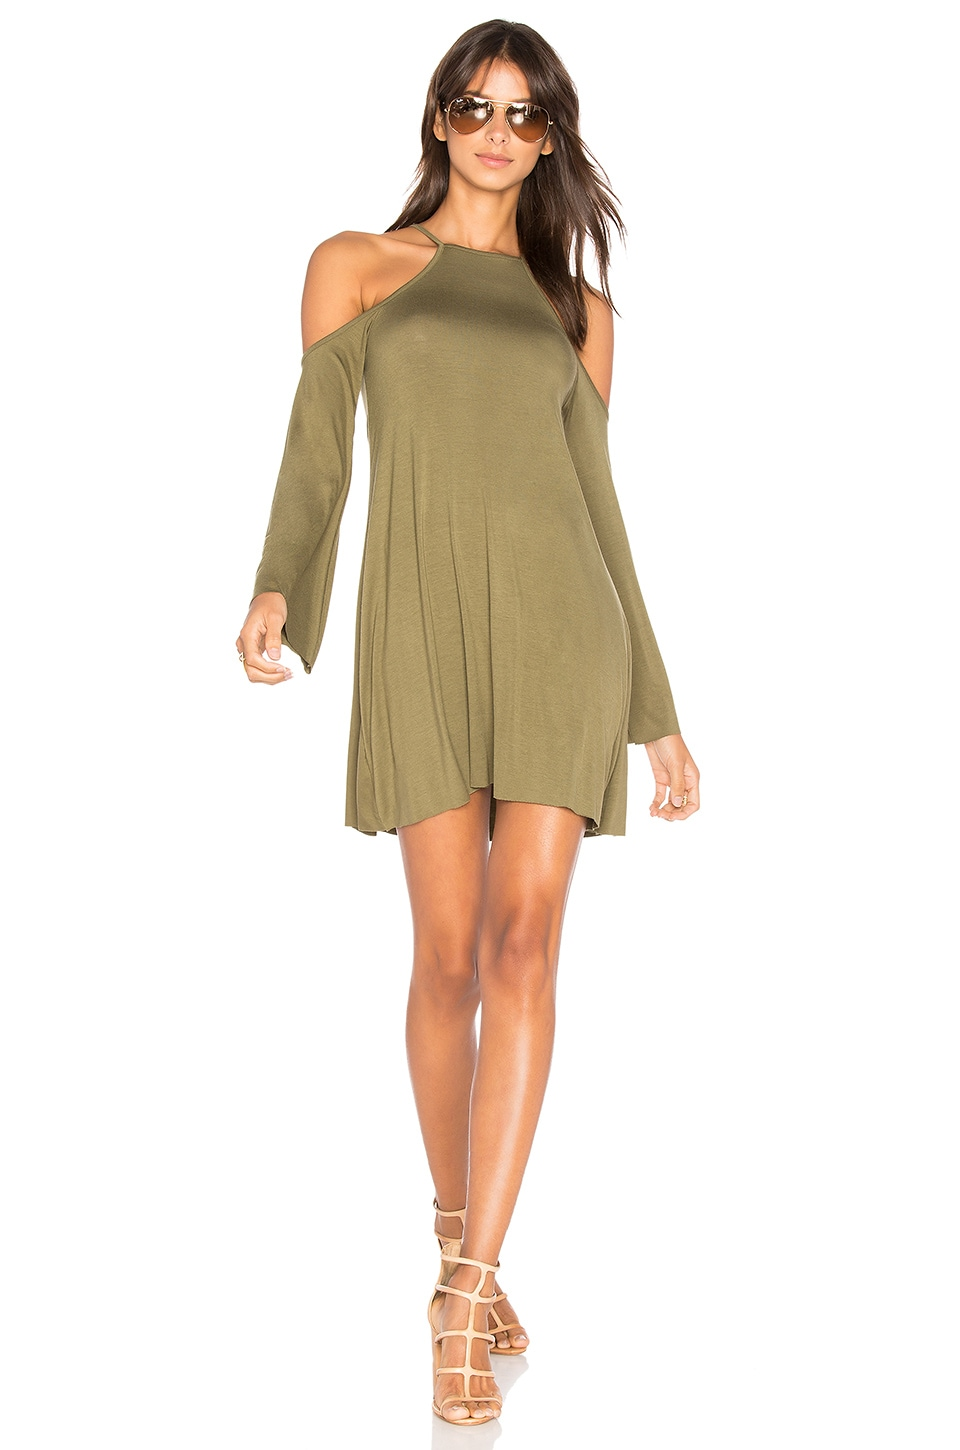 Clayton Everly Dress in Olive